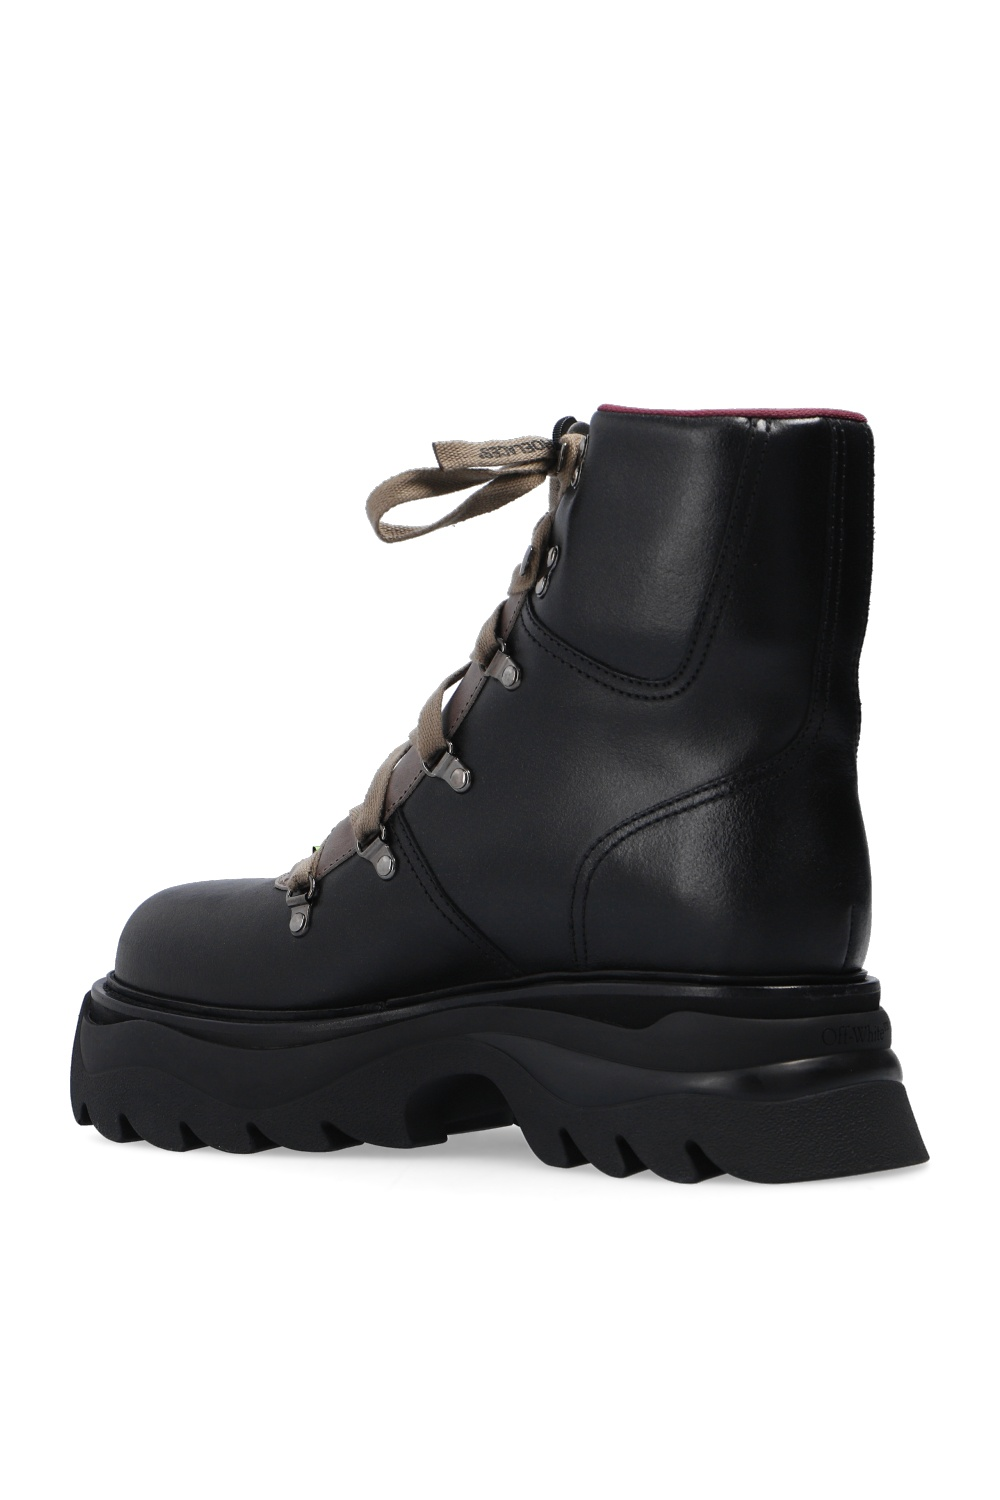 Off-White Patched boots